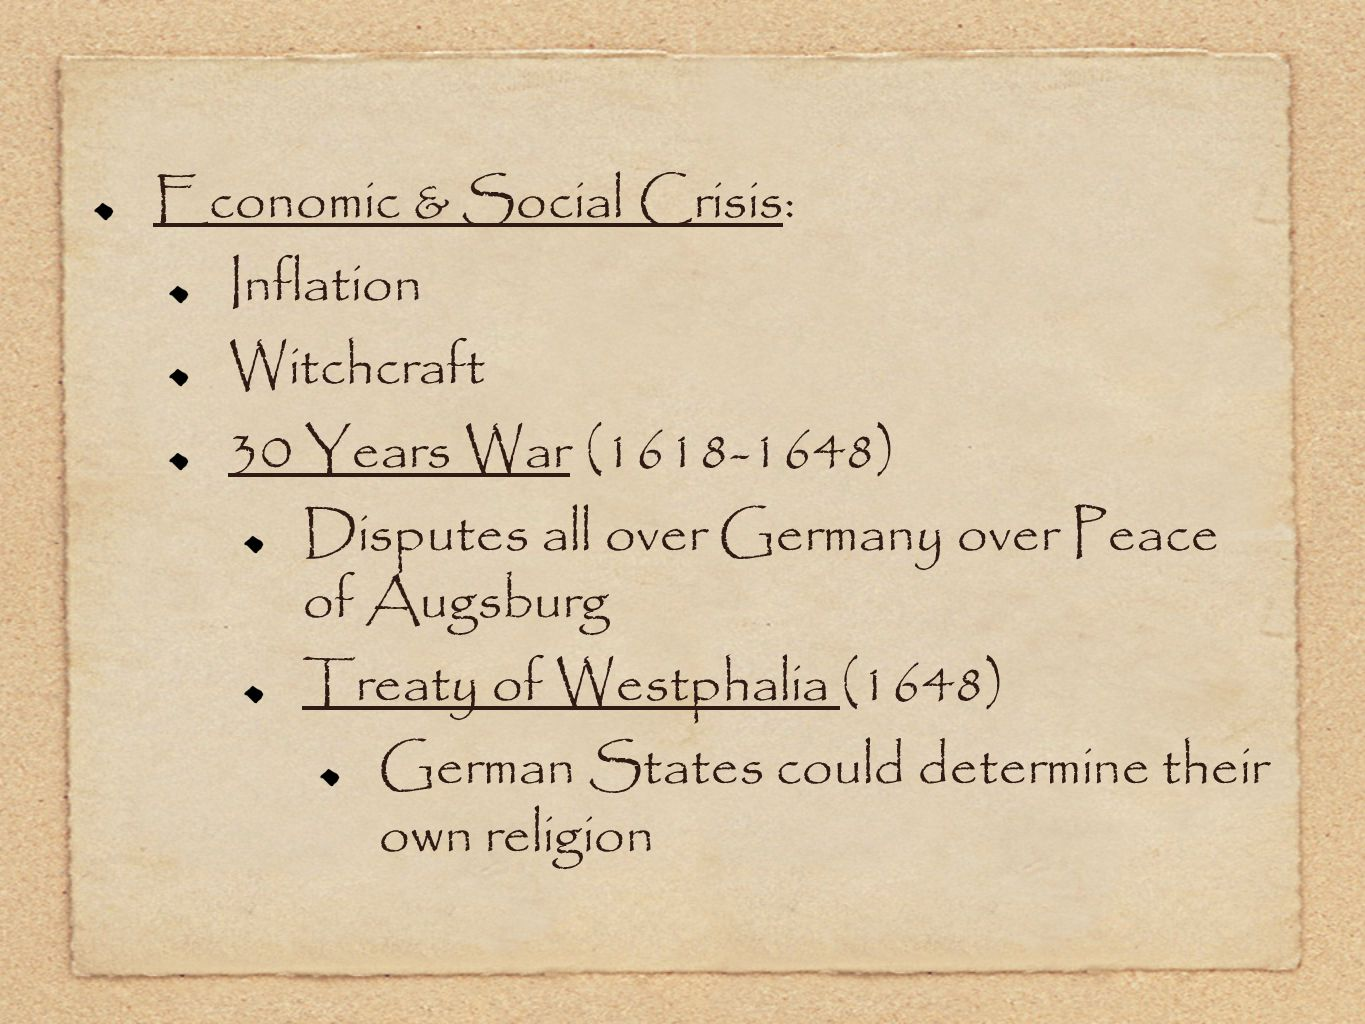 Economic & Social Crisis: Inflation Witchcraft 30 Years War (1618-1648) Disputes all over Germany over Peace of Augsburg Treaty of Westphalia (1648) German States could determine their own religion